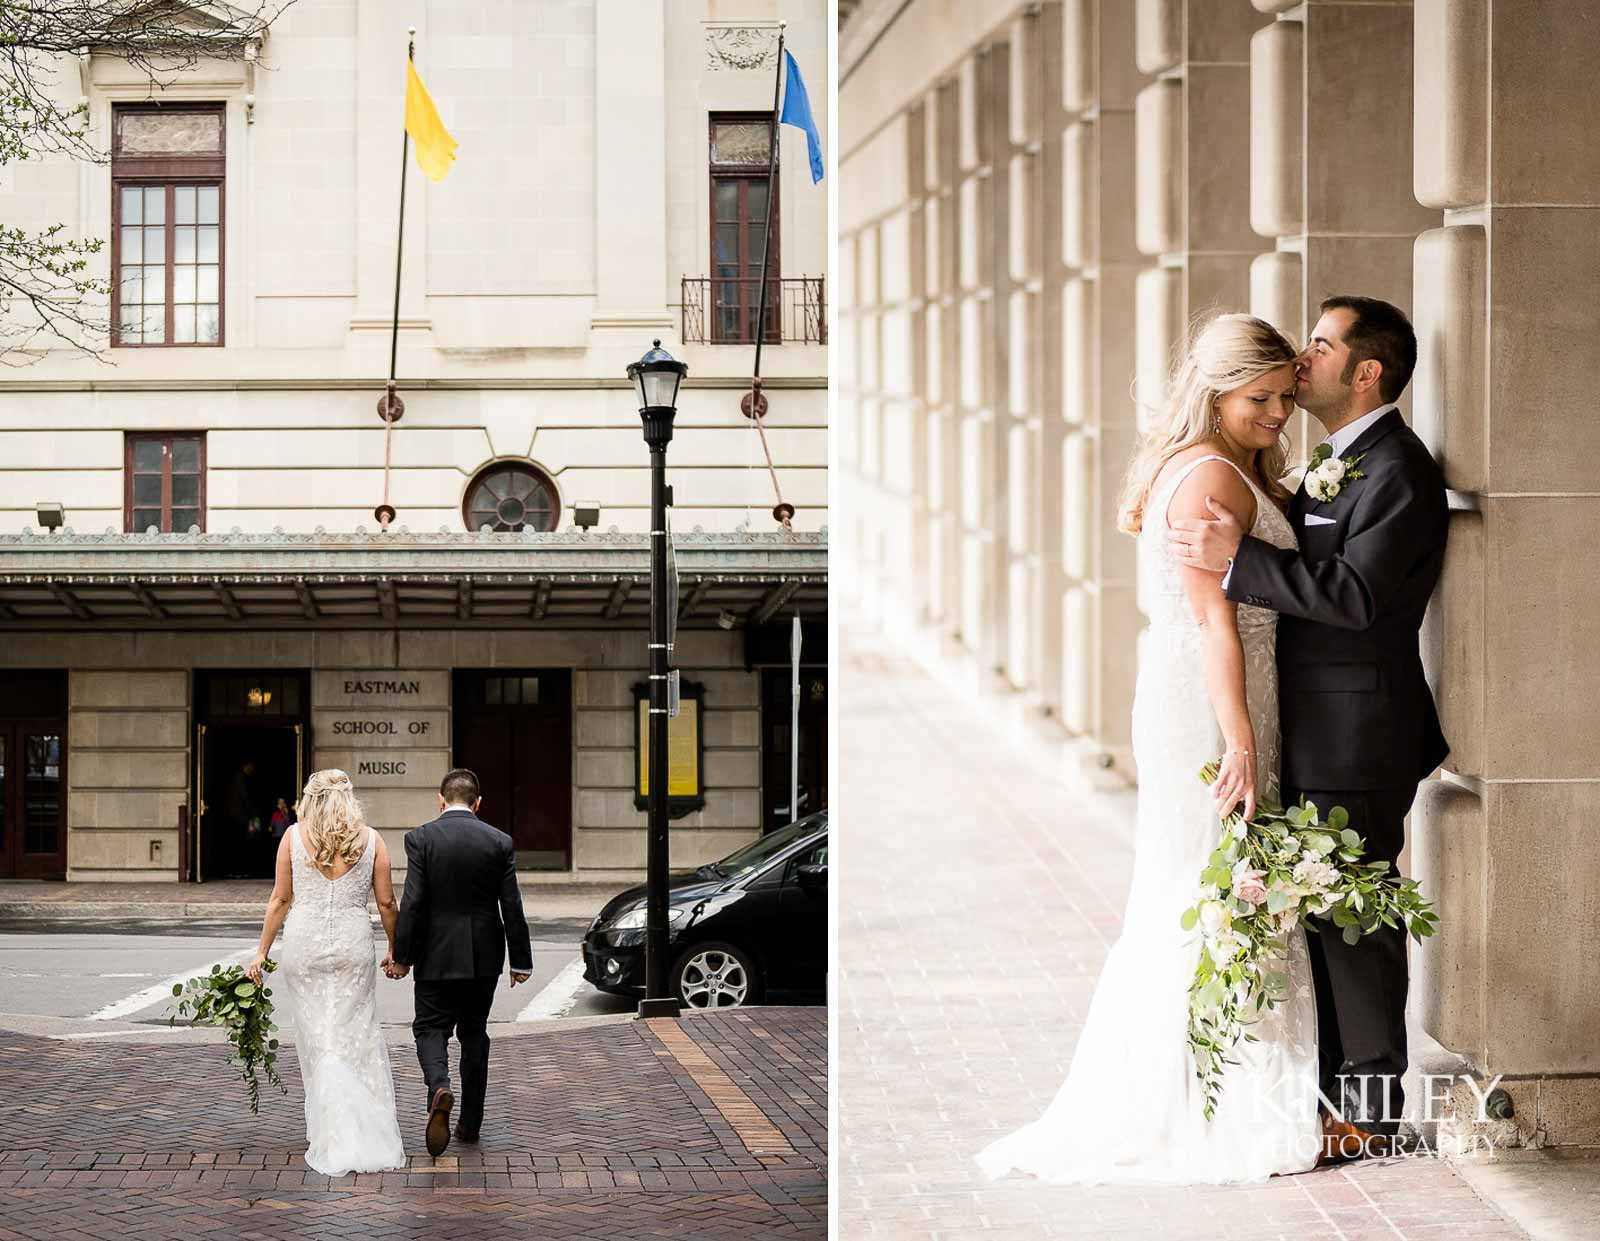 37-Max-of-Eastman-Wedding-and-Reception-Rochester-NY-Kniley-Photography.jpg